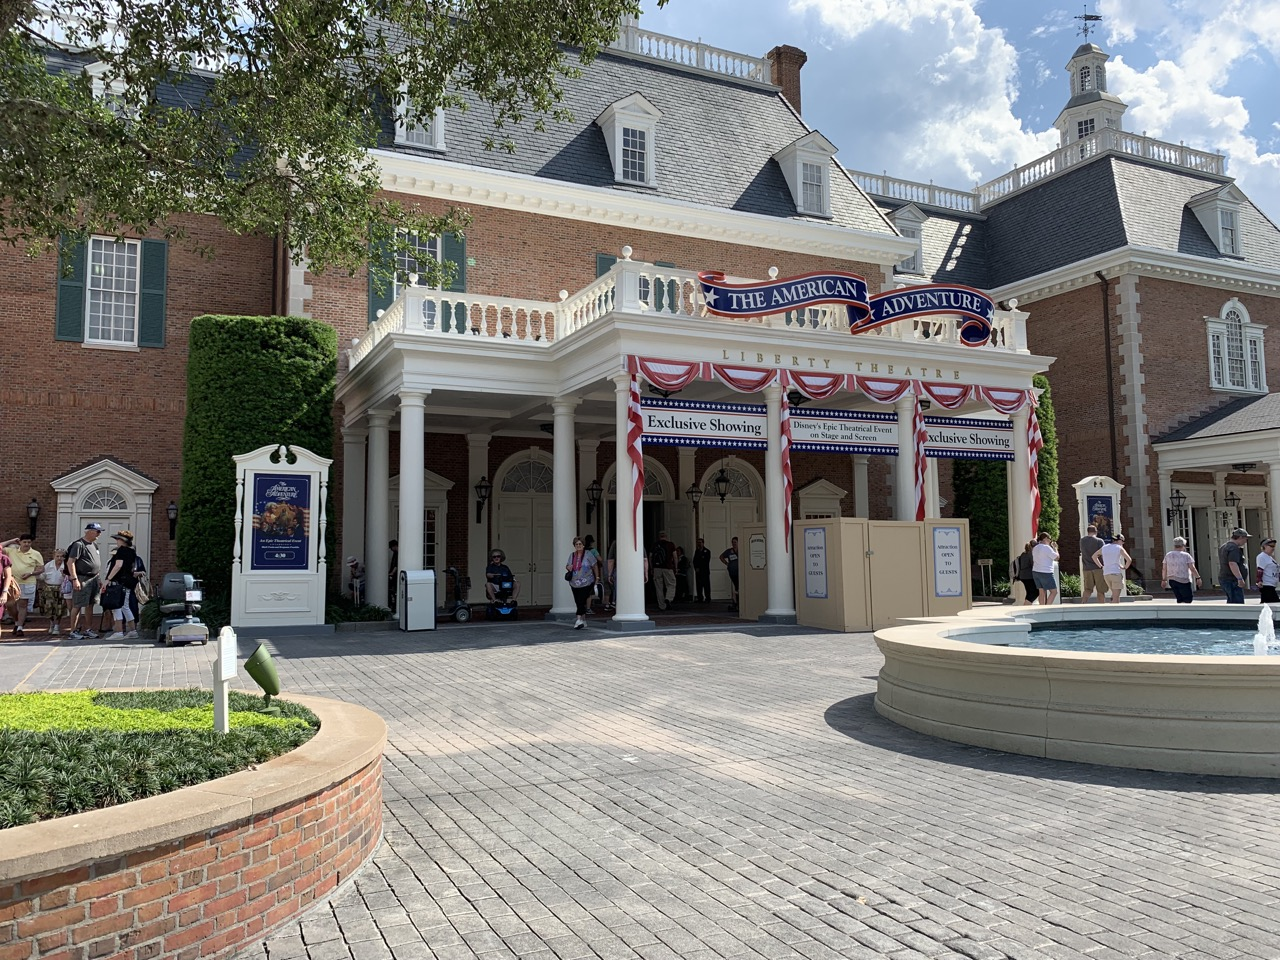 disney world trip report early summer 2019 day four 35 american adventure.jpeg